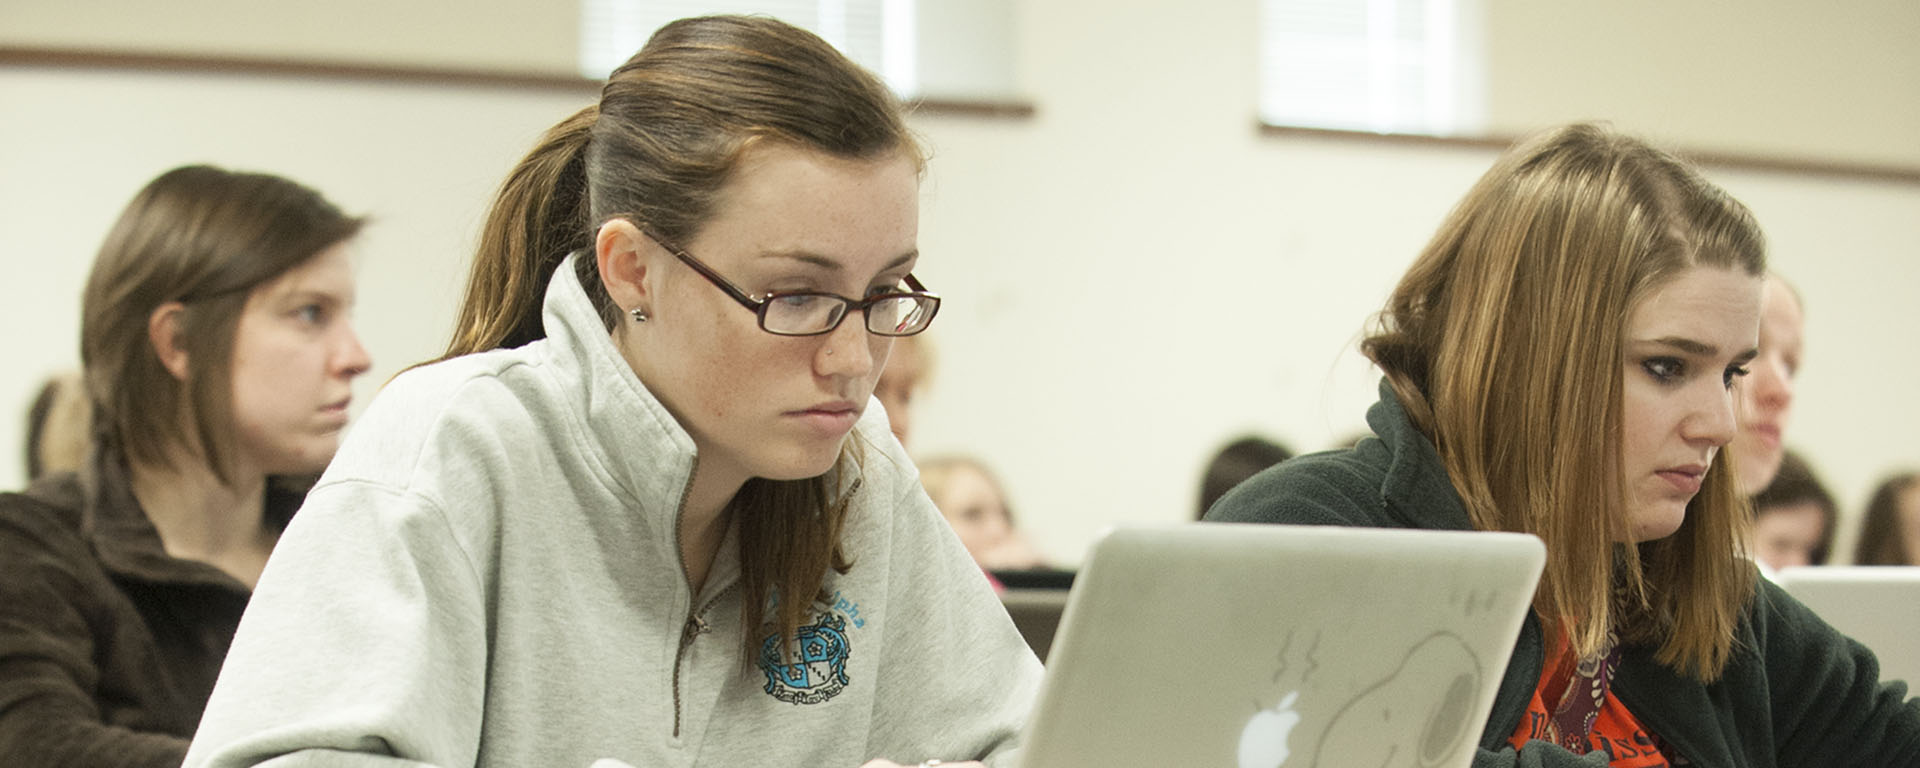 A Washburn student types on her laptop to take notes during class